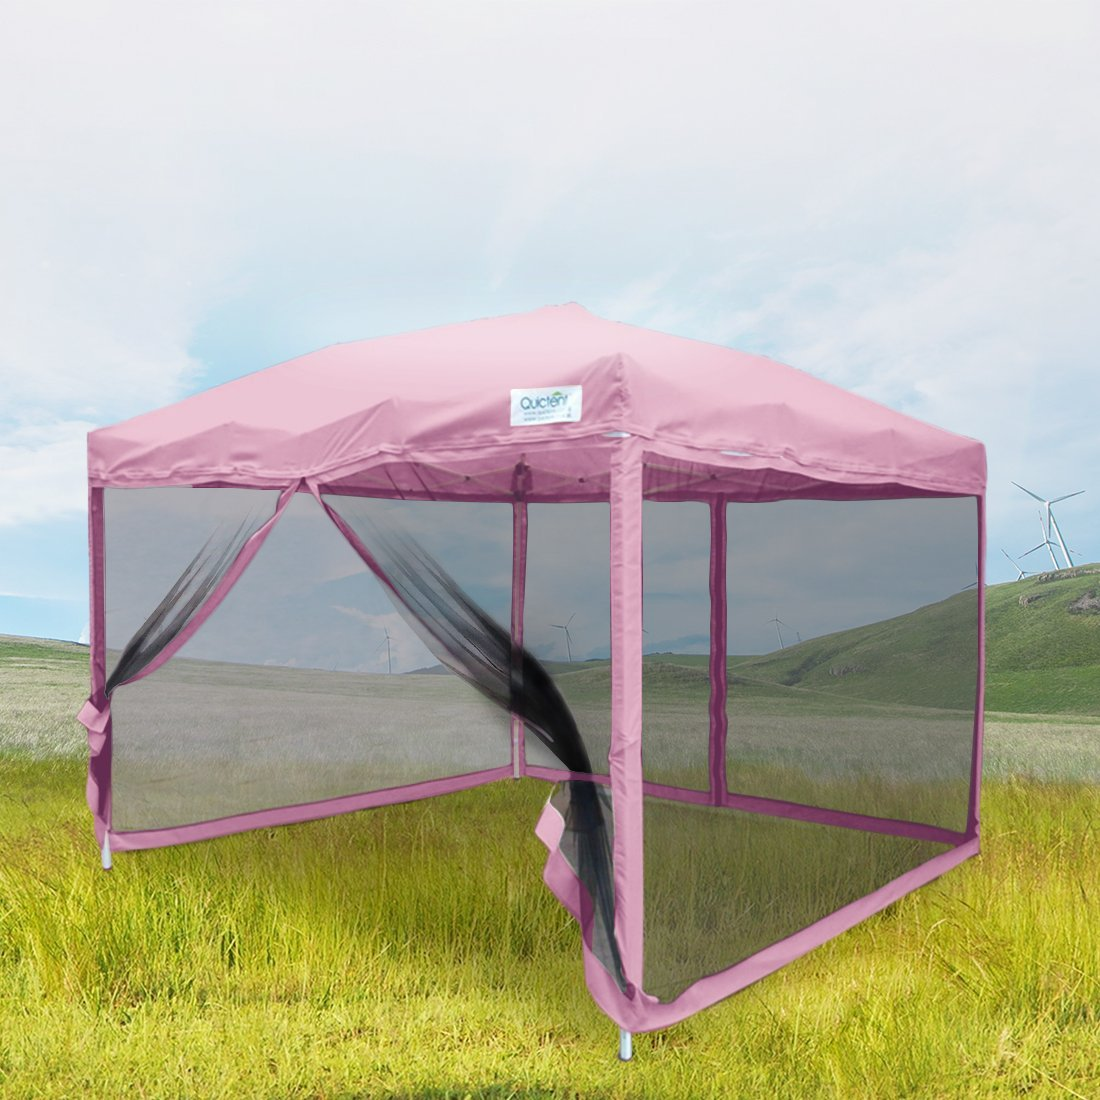 Quictent 8x8 Ez Pink Pop up Party Tent Canopy Gazebo Mesh Side Wall With Carry BAG & Quictent 8x8 Ez Pink Pop up Party Tent Canopy Gazebo Mesh Side ...